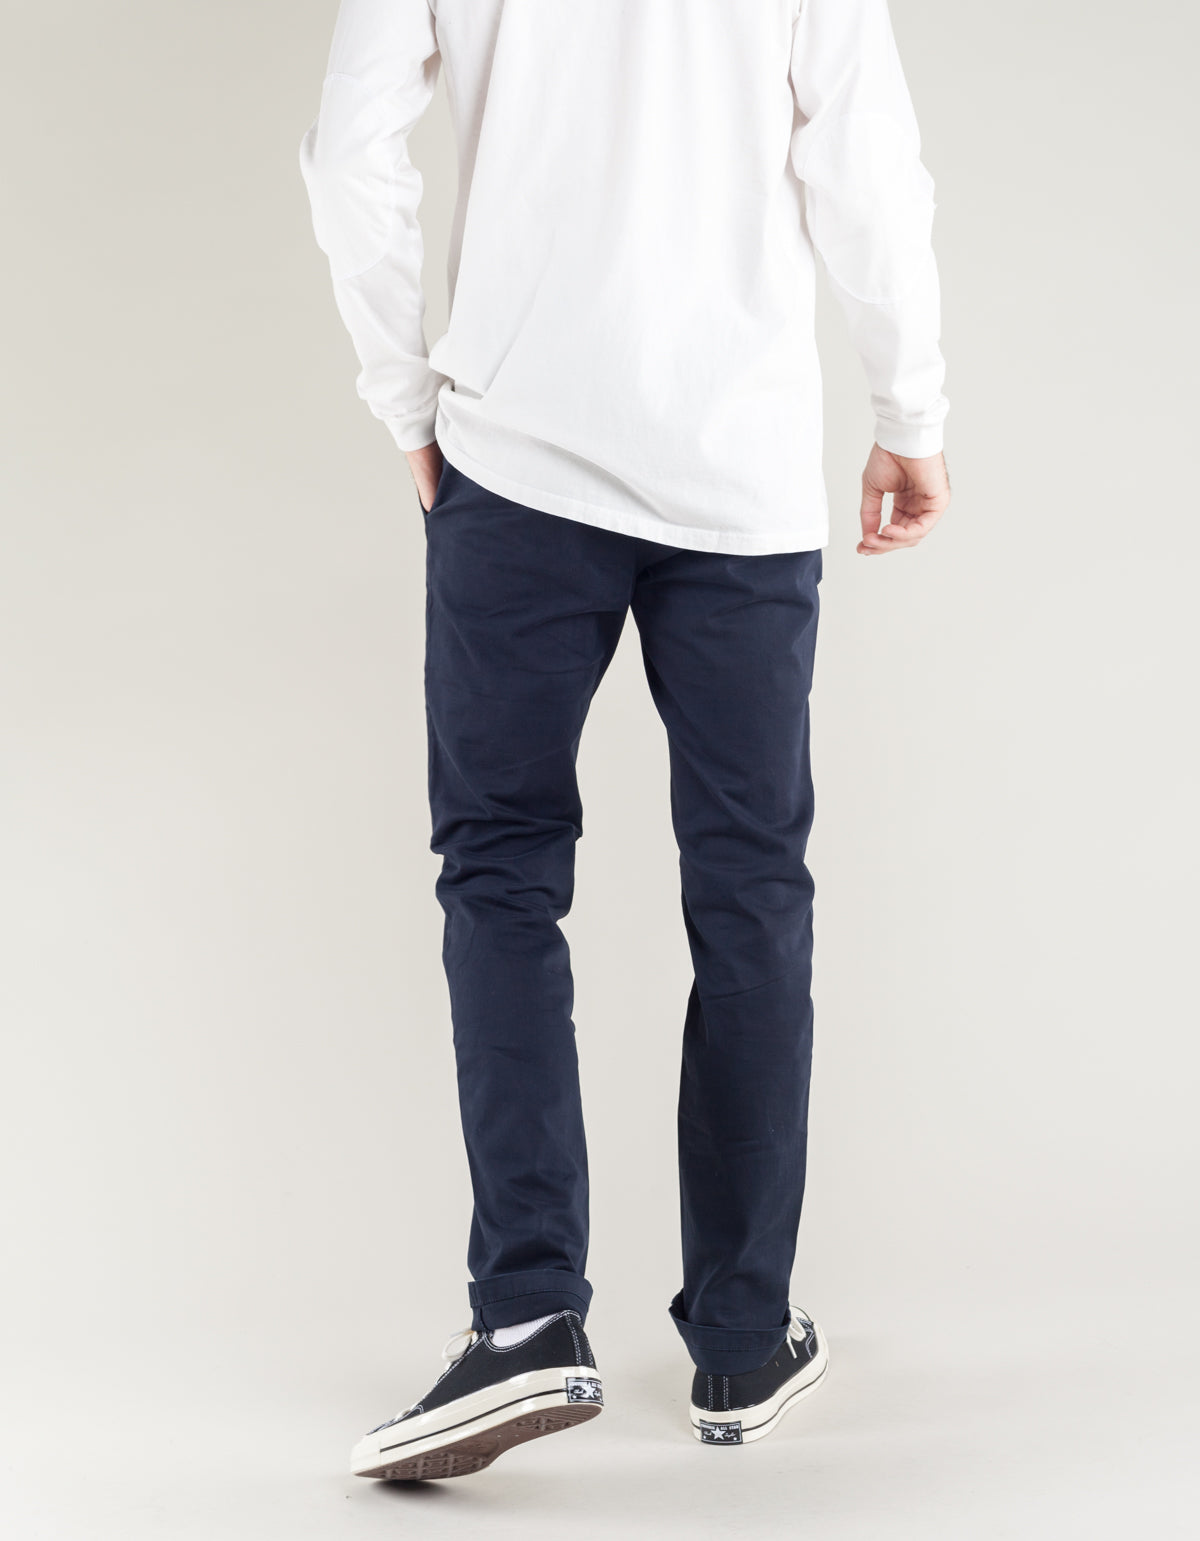 The Daily Co. Classic Chino Navy